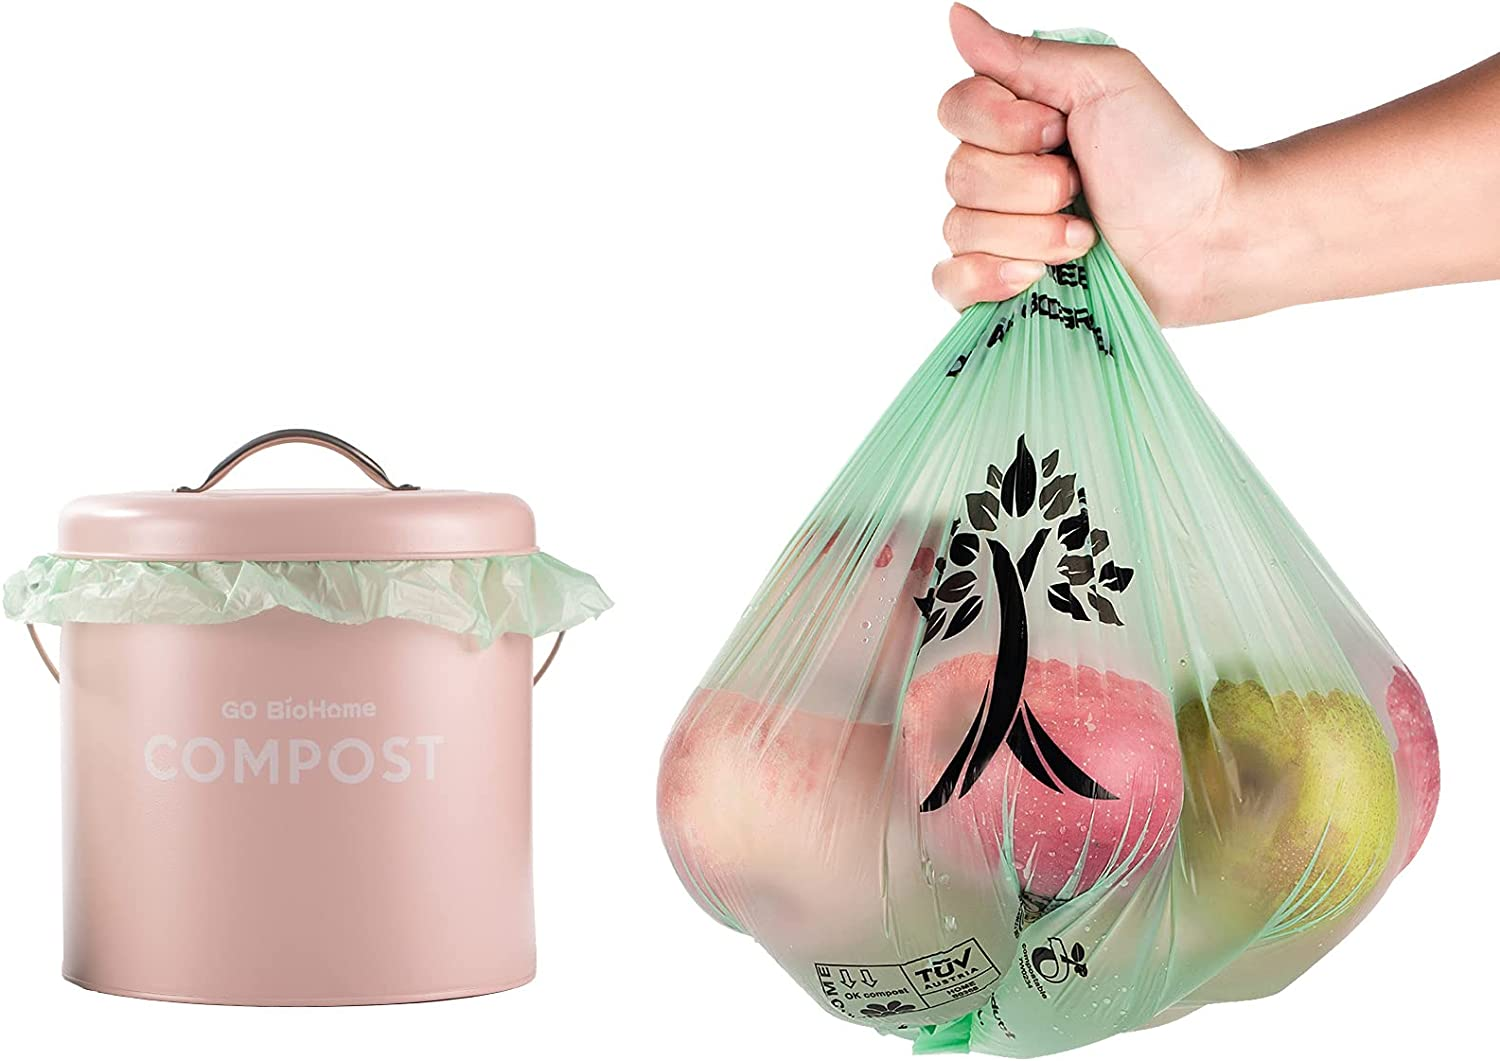 Compostable & Biodegradable Trash Bags, 3 Gallon,11.35 Liter, 100 Count, Extra Thick and Strong 0.75 Mils, Leak & Odor Control, Kitchen Garbage Waste Compost Bags, US BPI and Europe OK Compost Home highest Certified